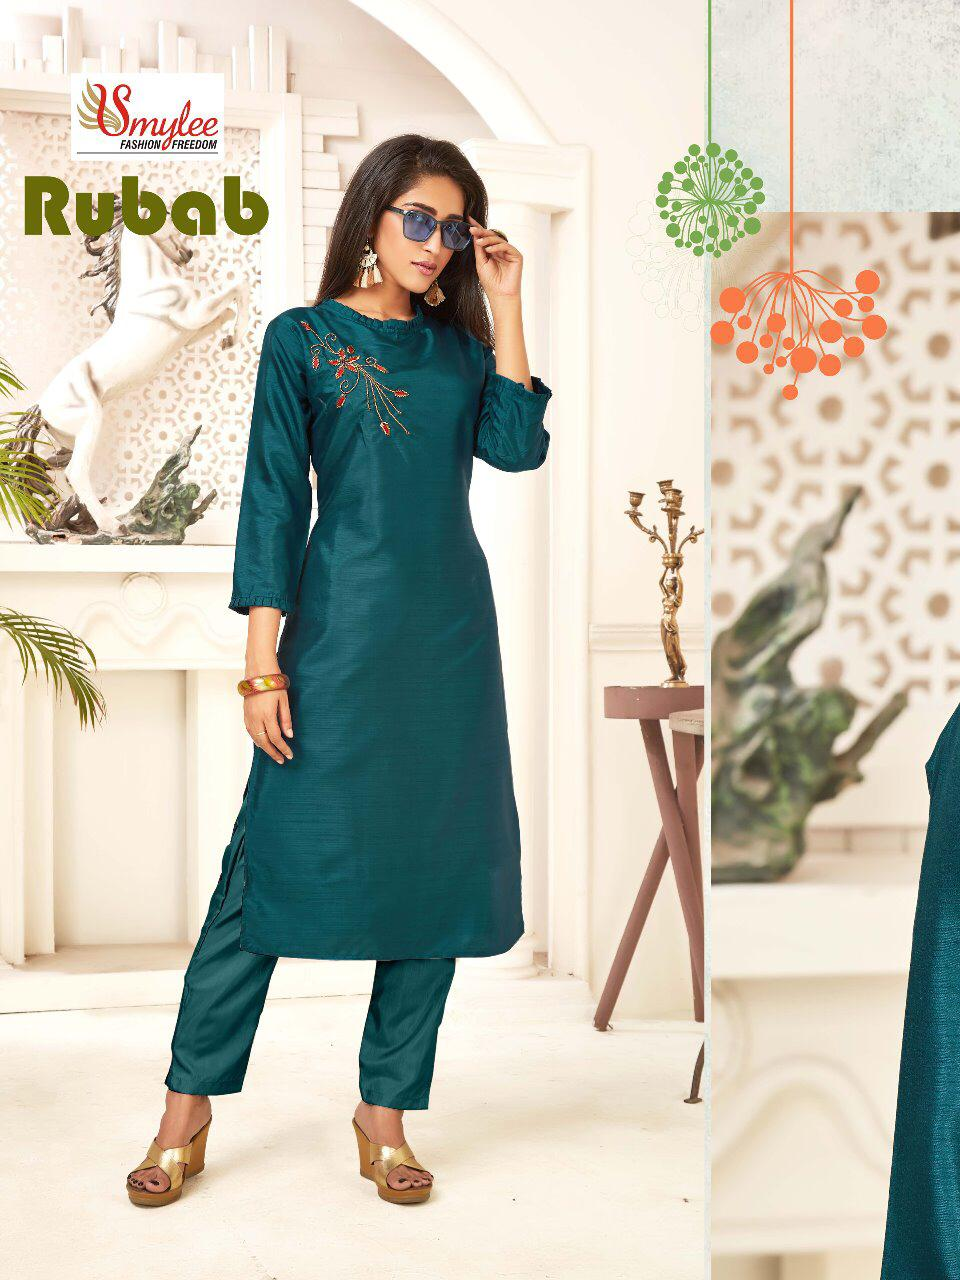 Smylee Rubab collection 5